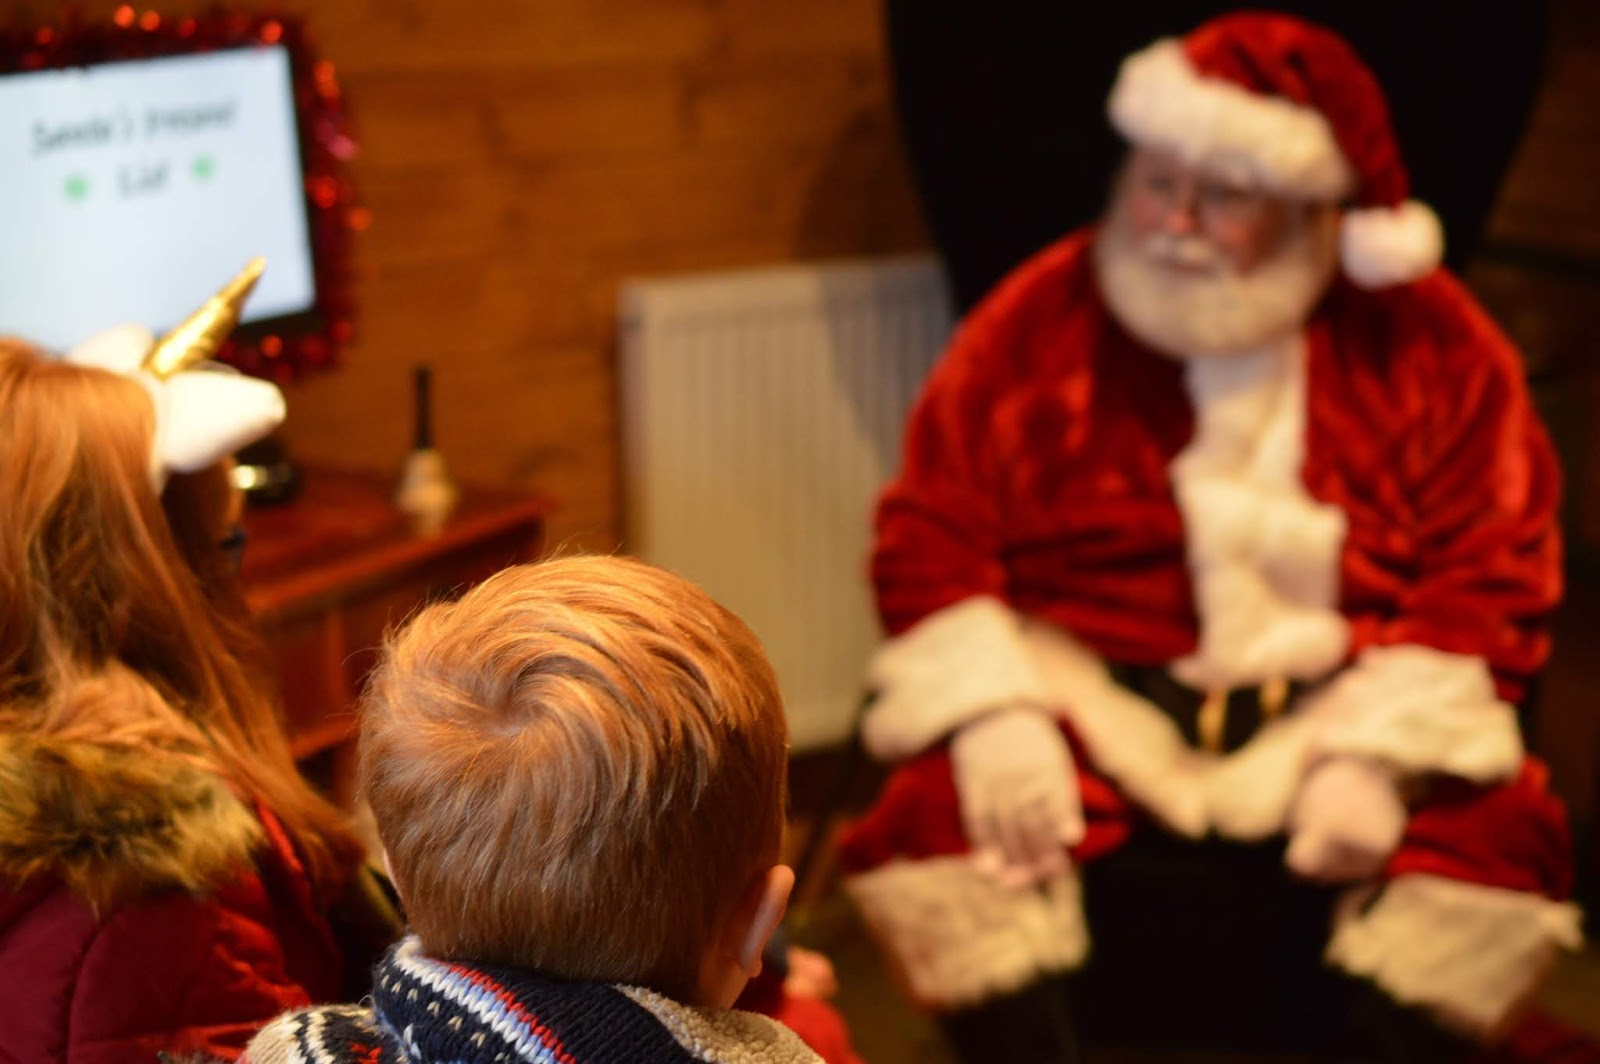 Santa on the Rooftop at Fenwick Newcastle | A Review  - meeting santa claus